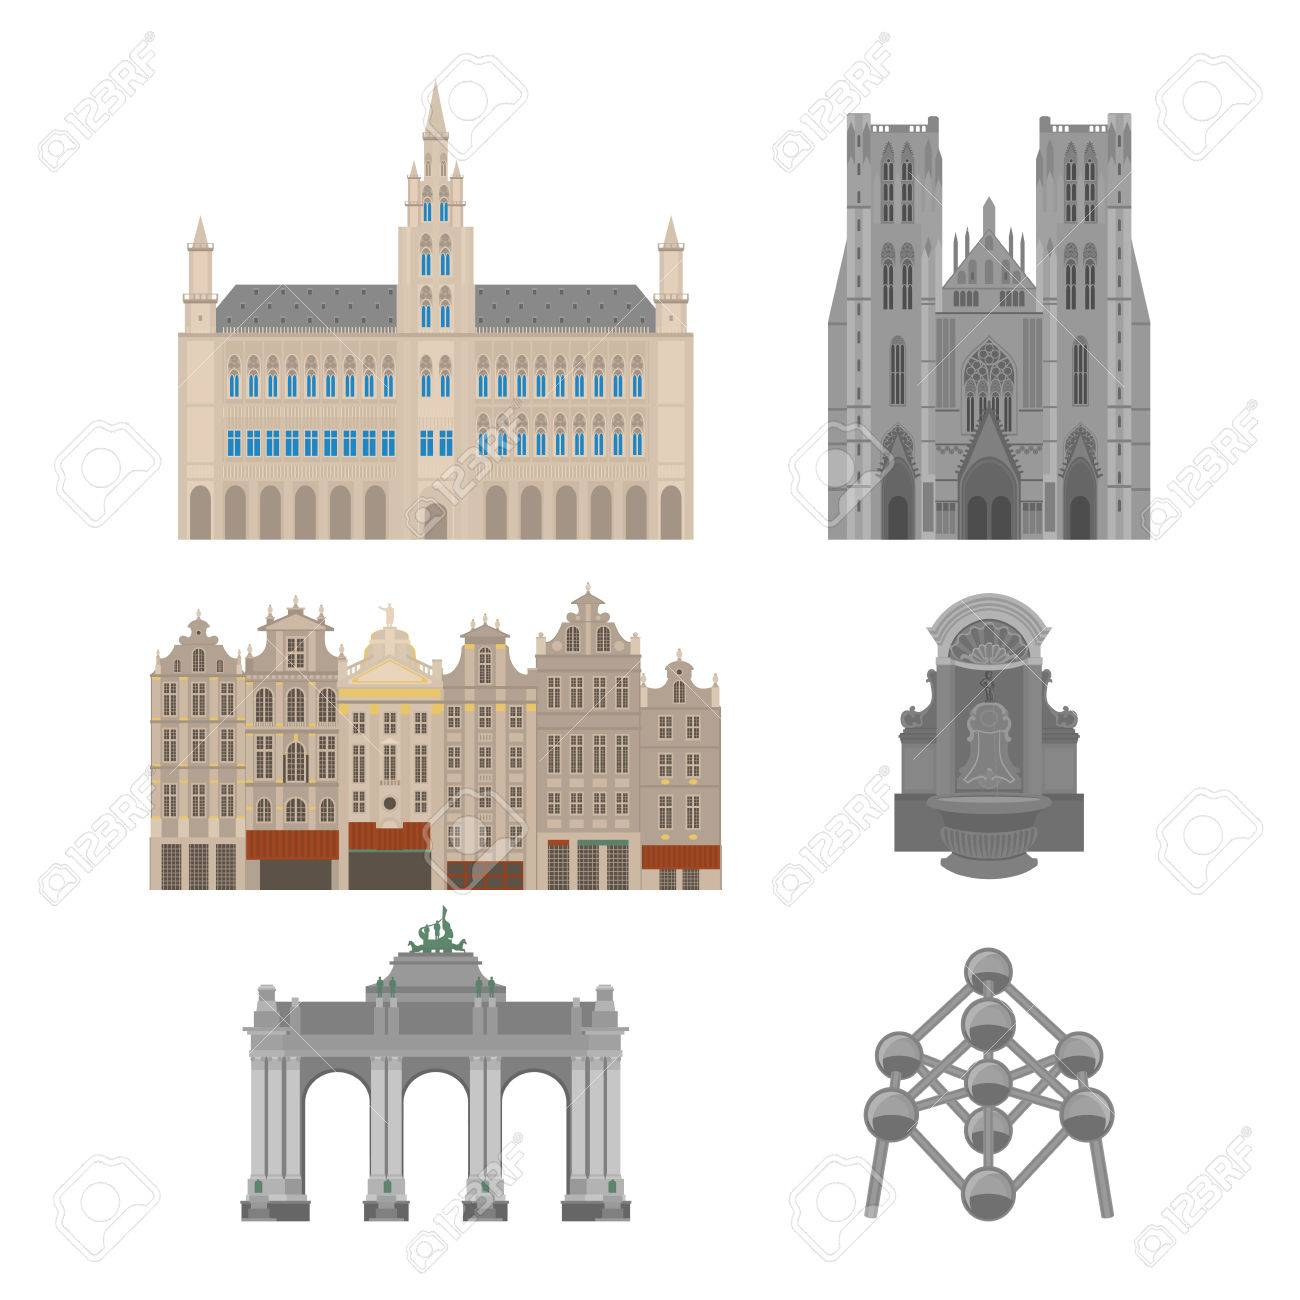 City sights. Brussels architecture landmark. Belgium country flat travel elements. Famous square Grand place with Town Hall. Cathedral of St. Michael and St. Gudula. Triumphal arch. Statue of a urinating boy. - 79344412